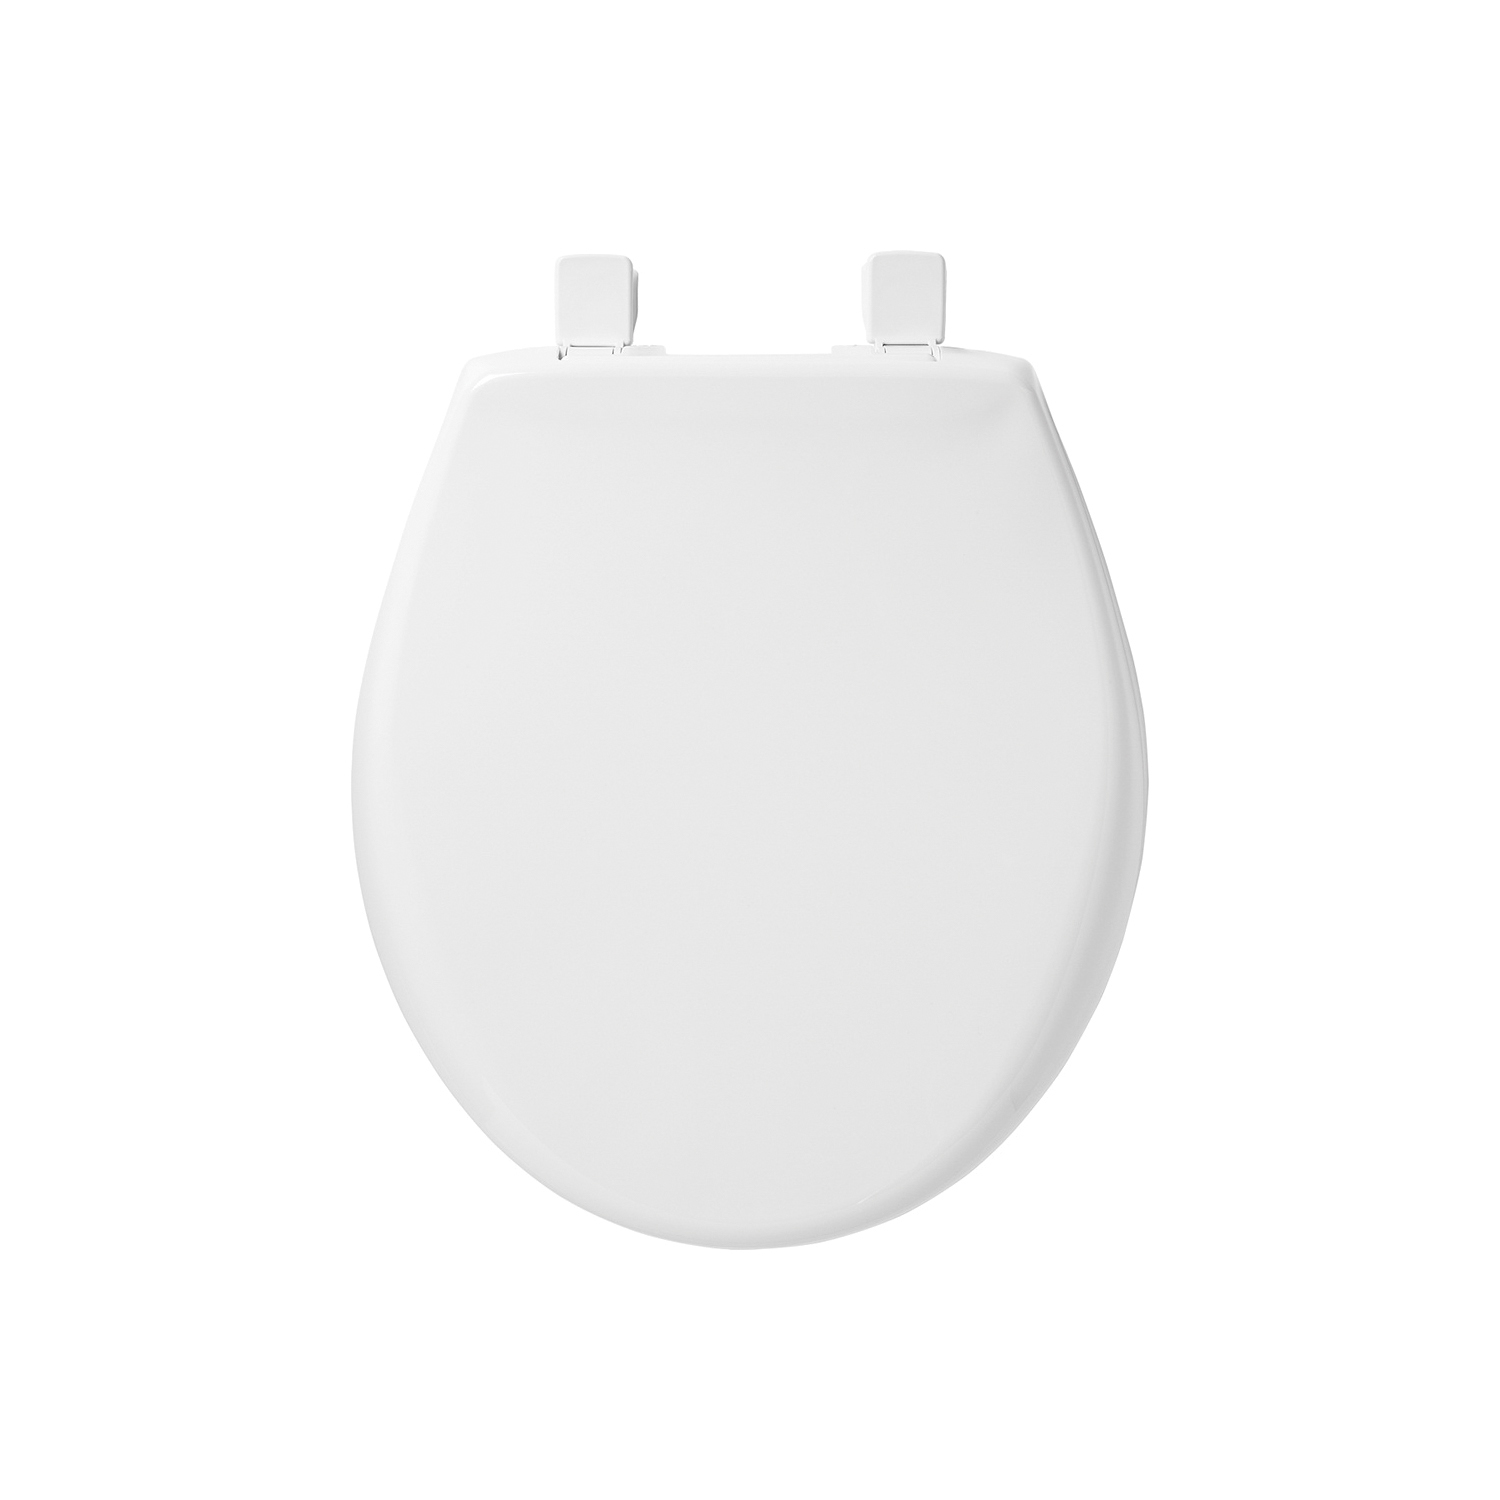 Admirable Gts Toilet Seats Pdpeps Interior Chair Design Pdpepsorg